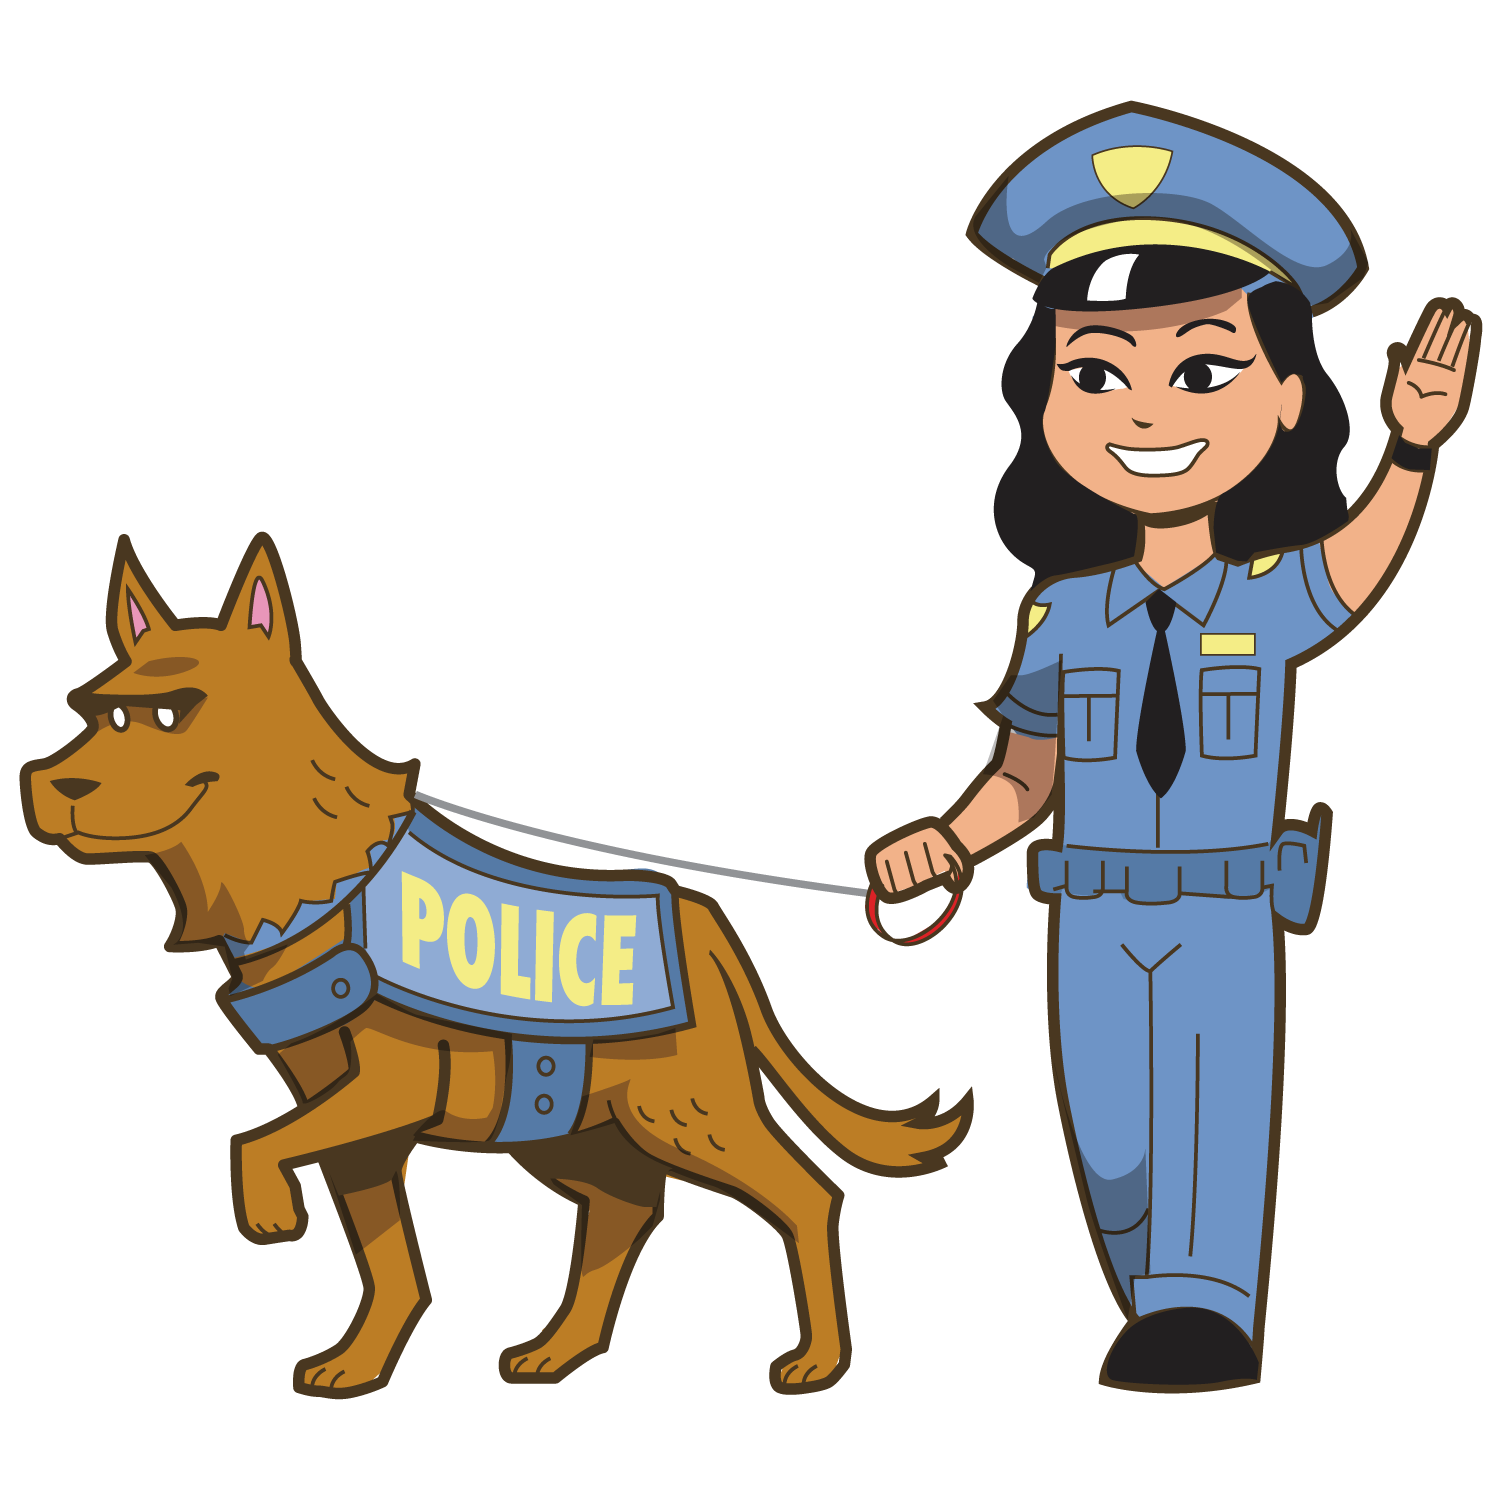 banner library download Police dog clipart. Officer royalty free clip